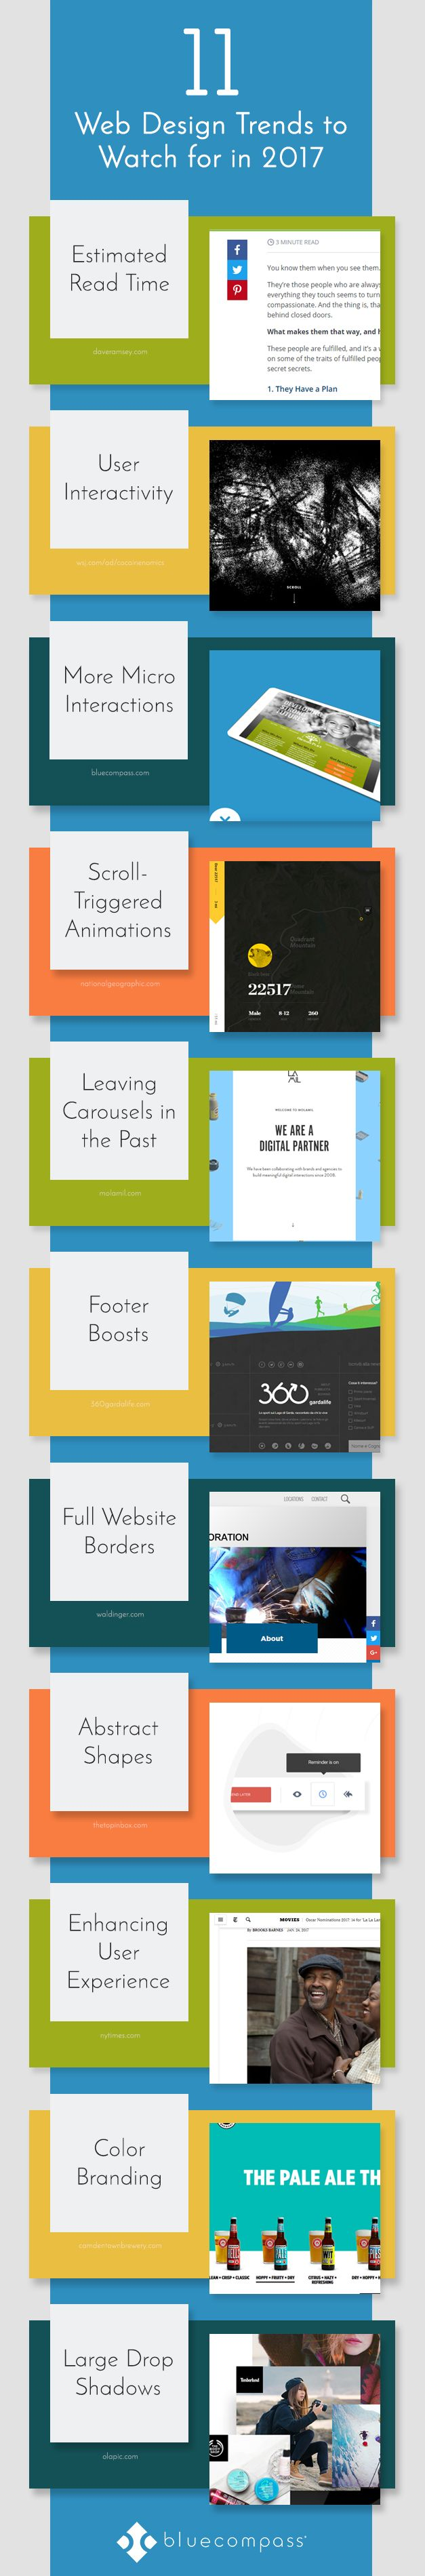 2017 web design trends guaranteed to be a hit.